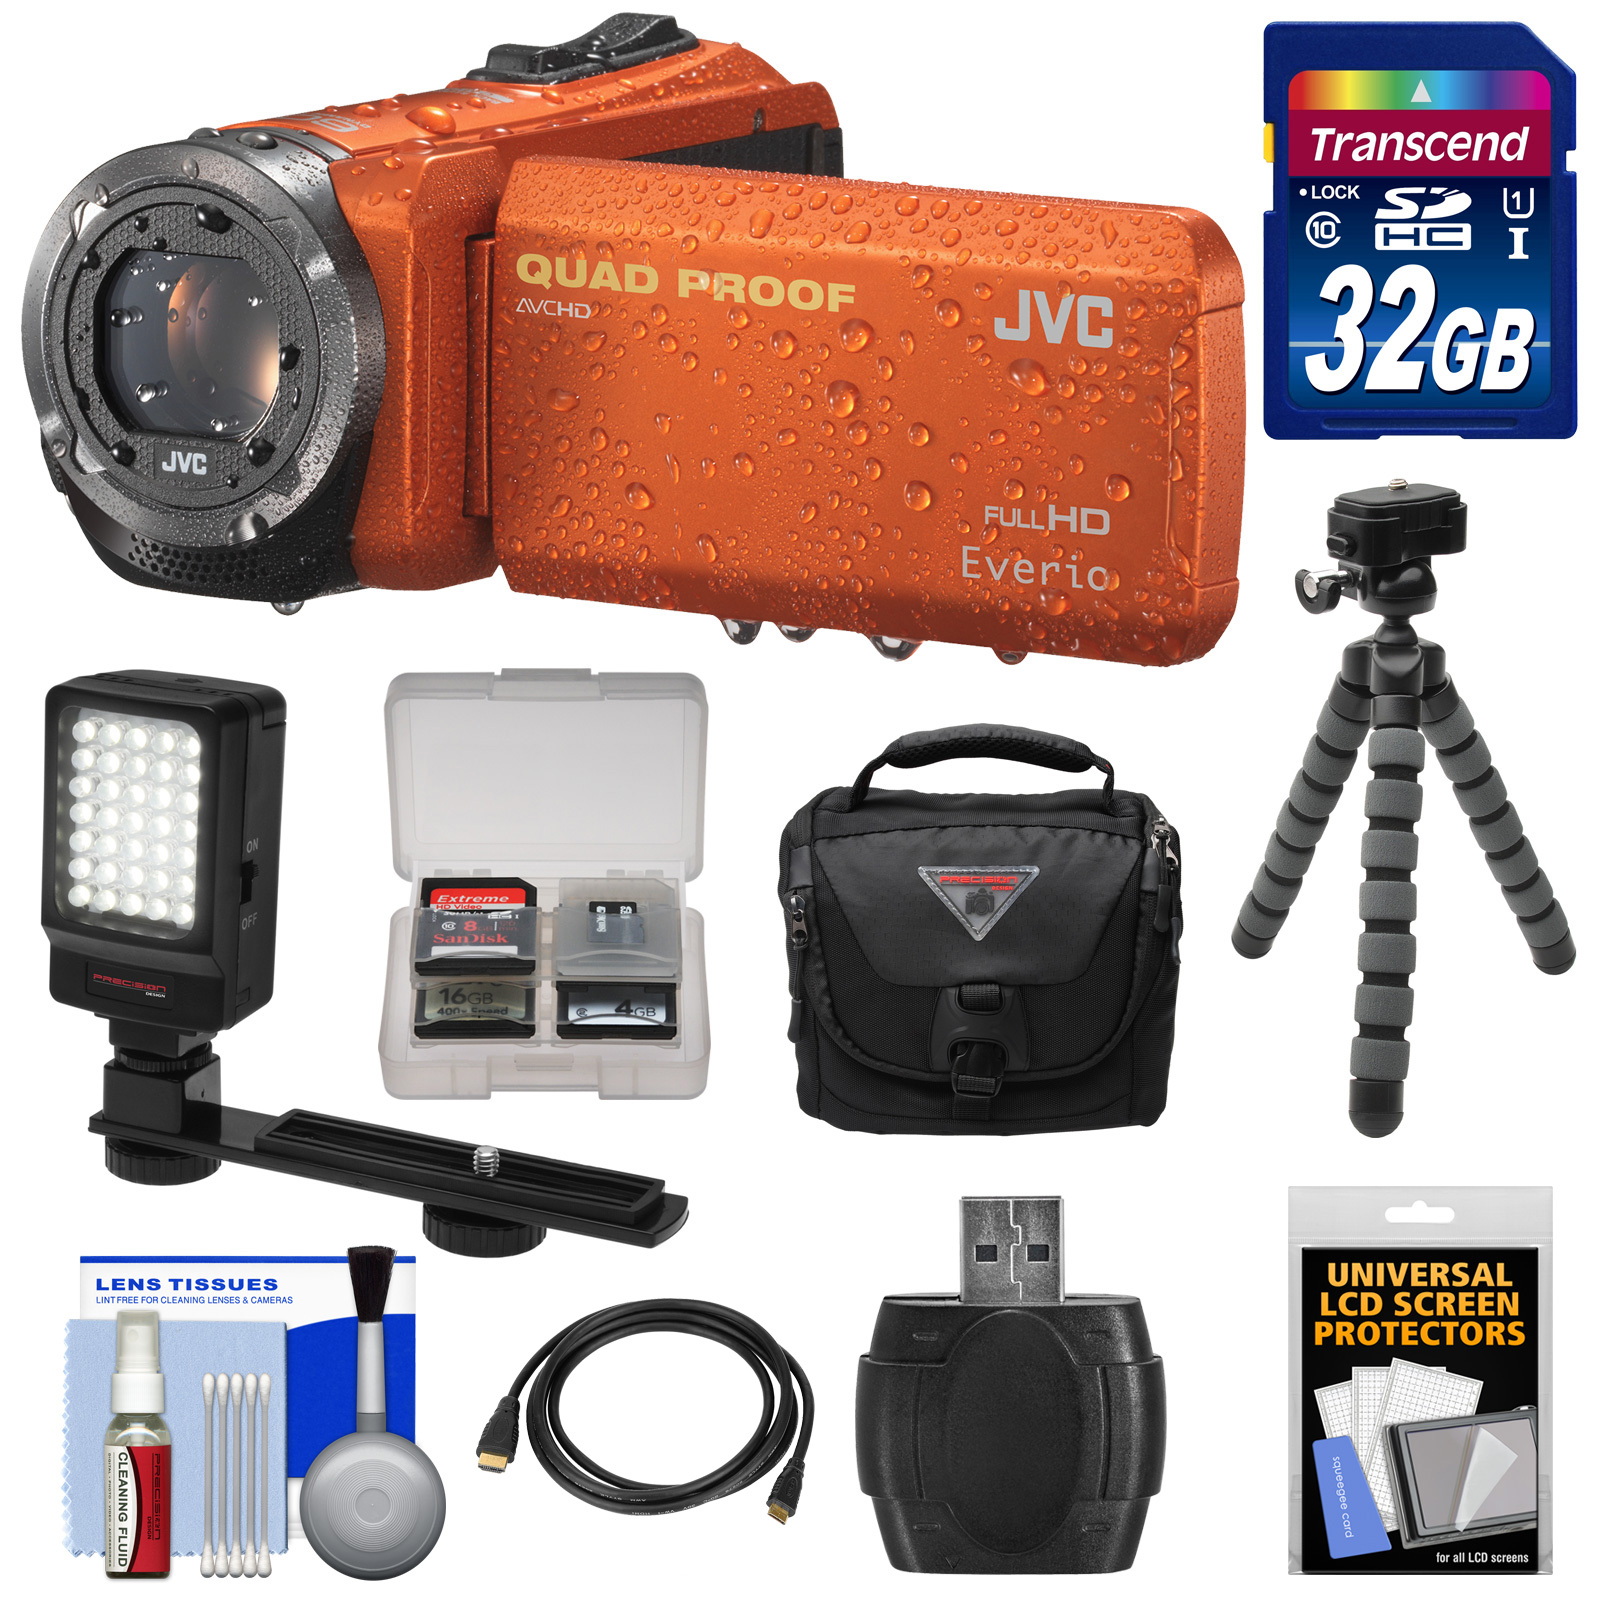 JVC Everio GZ-R320 Quad Proof Full HD Digital Video Camera Camcorder (Orange) with 32GB Card + Case + Flex Tripod + LED Light + Kit